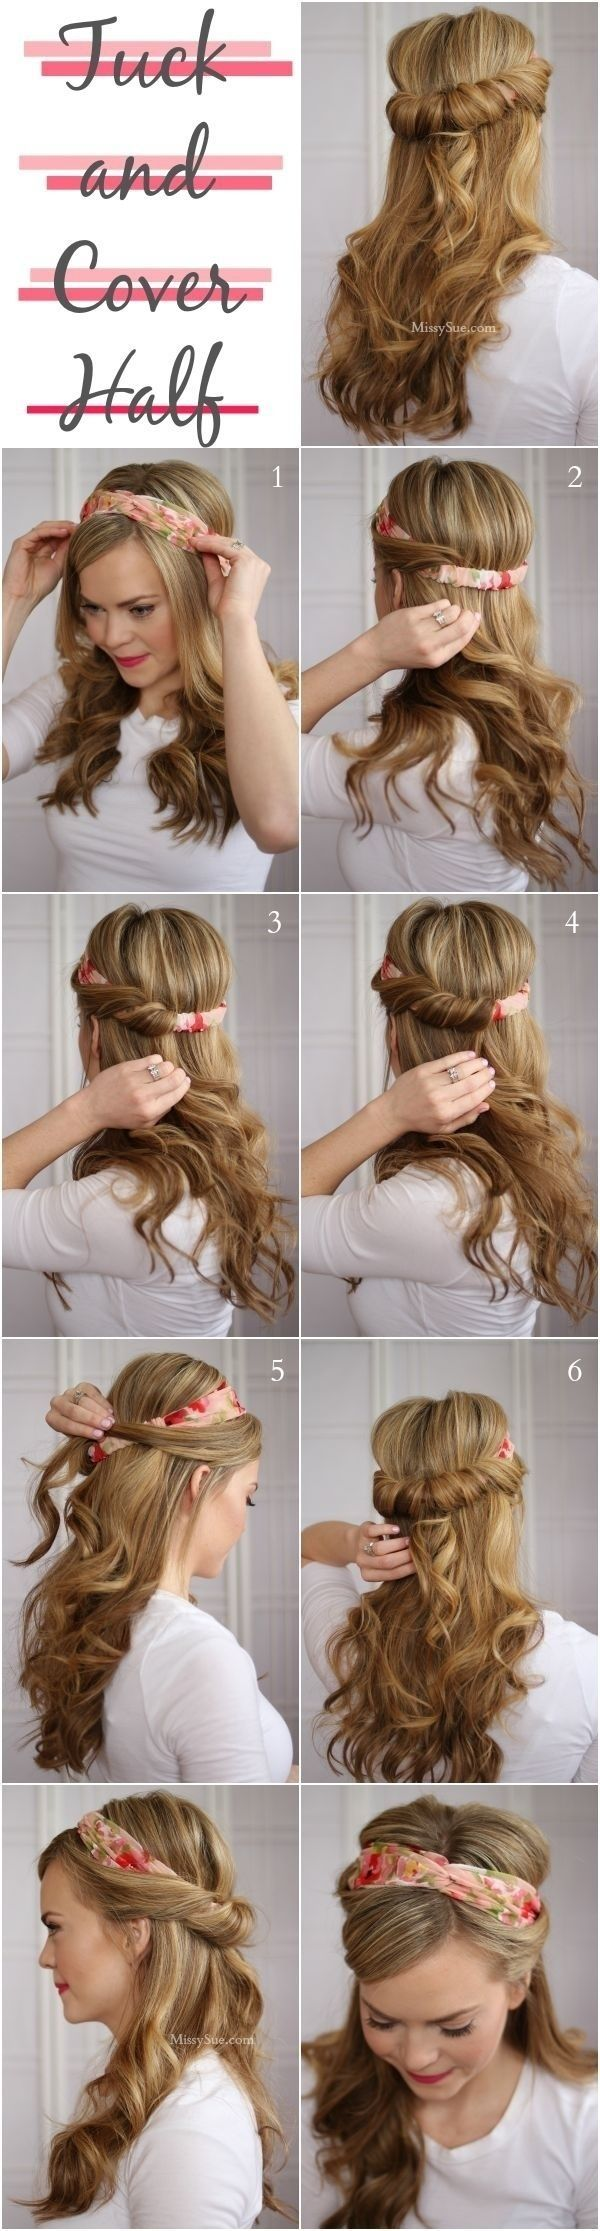 Best Hair Styling Hacks for Lazy Girls